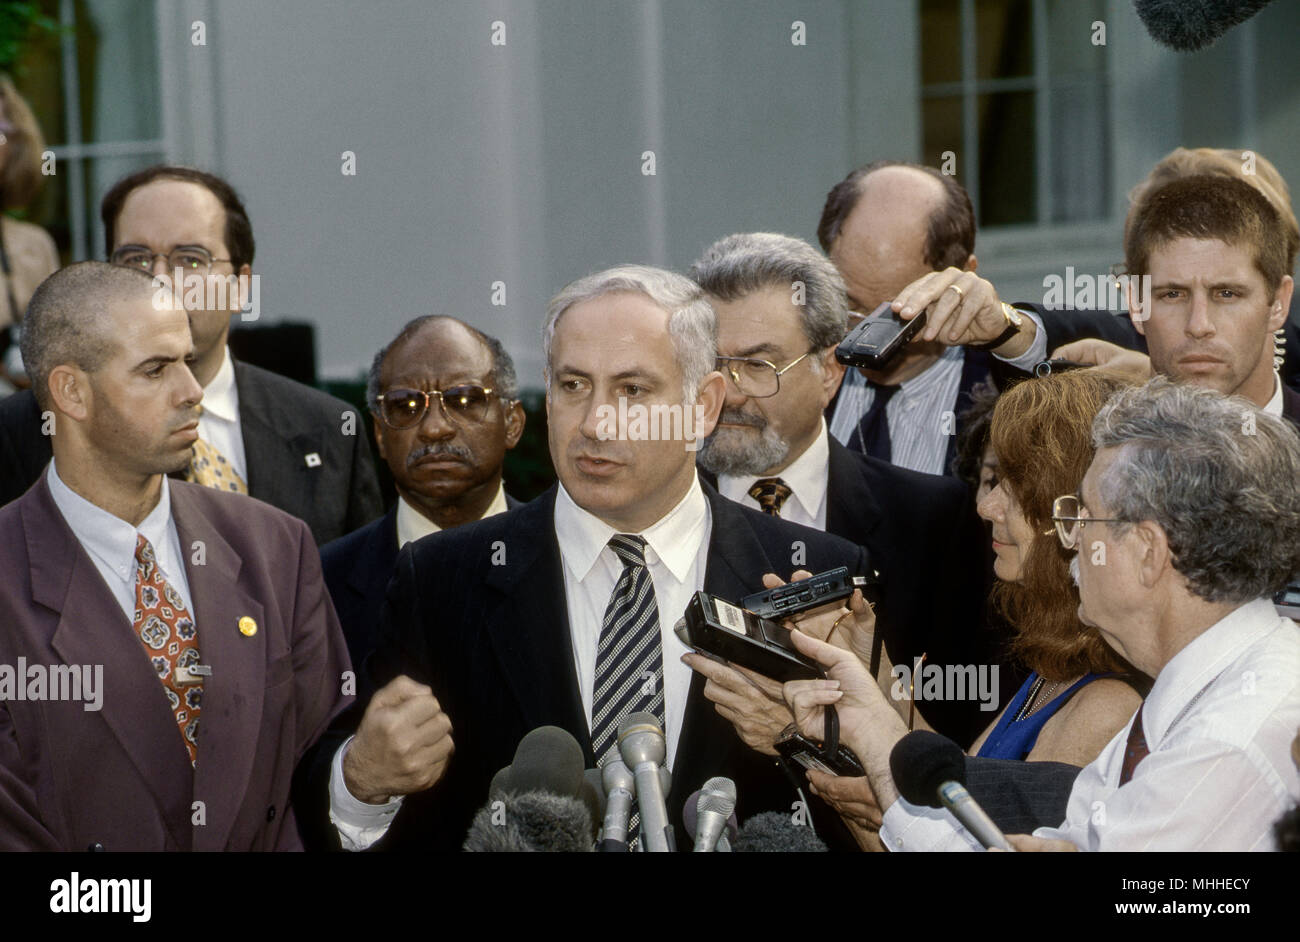 Washington, DC. USA, 9th July 1996  Israeli Prime Minister Benjamin Netanyahu speaks with reporters in the West Wing driveway of the White House during his visit to meet with President William Clinton. Benjamin 'Bibi' Netanyahu is the current Prime Minister of Israel. He also currently serves as a member of the Knesset and Chairman of the Likud party. Born in Tel Aviv to secular Jewish parents, Netanyahu is the first Israeli prime minister born in Israel after the establishment of the state. - Stock Image